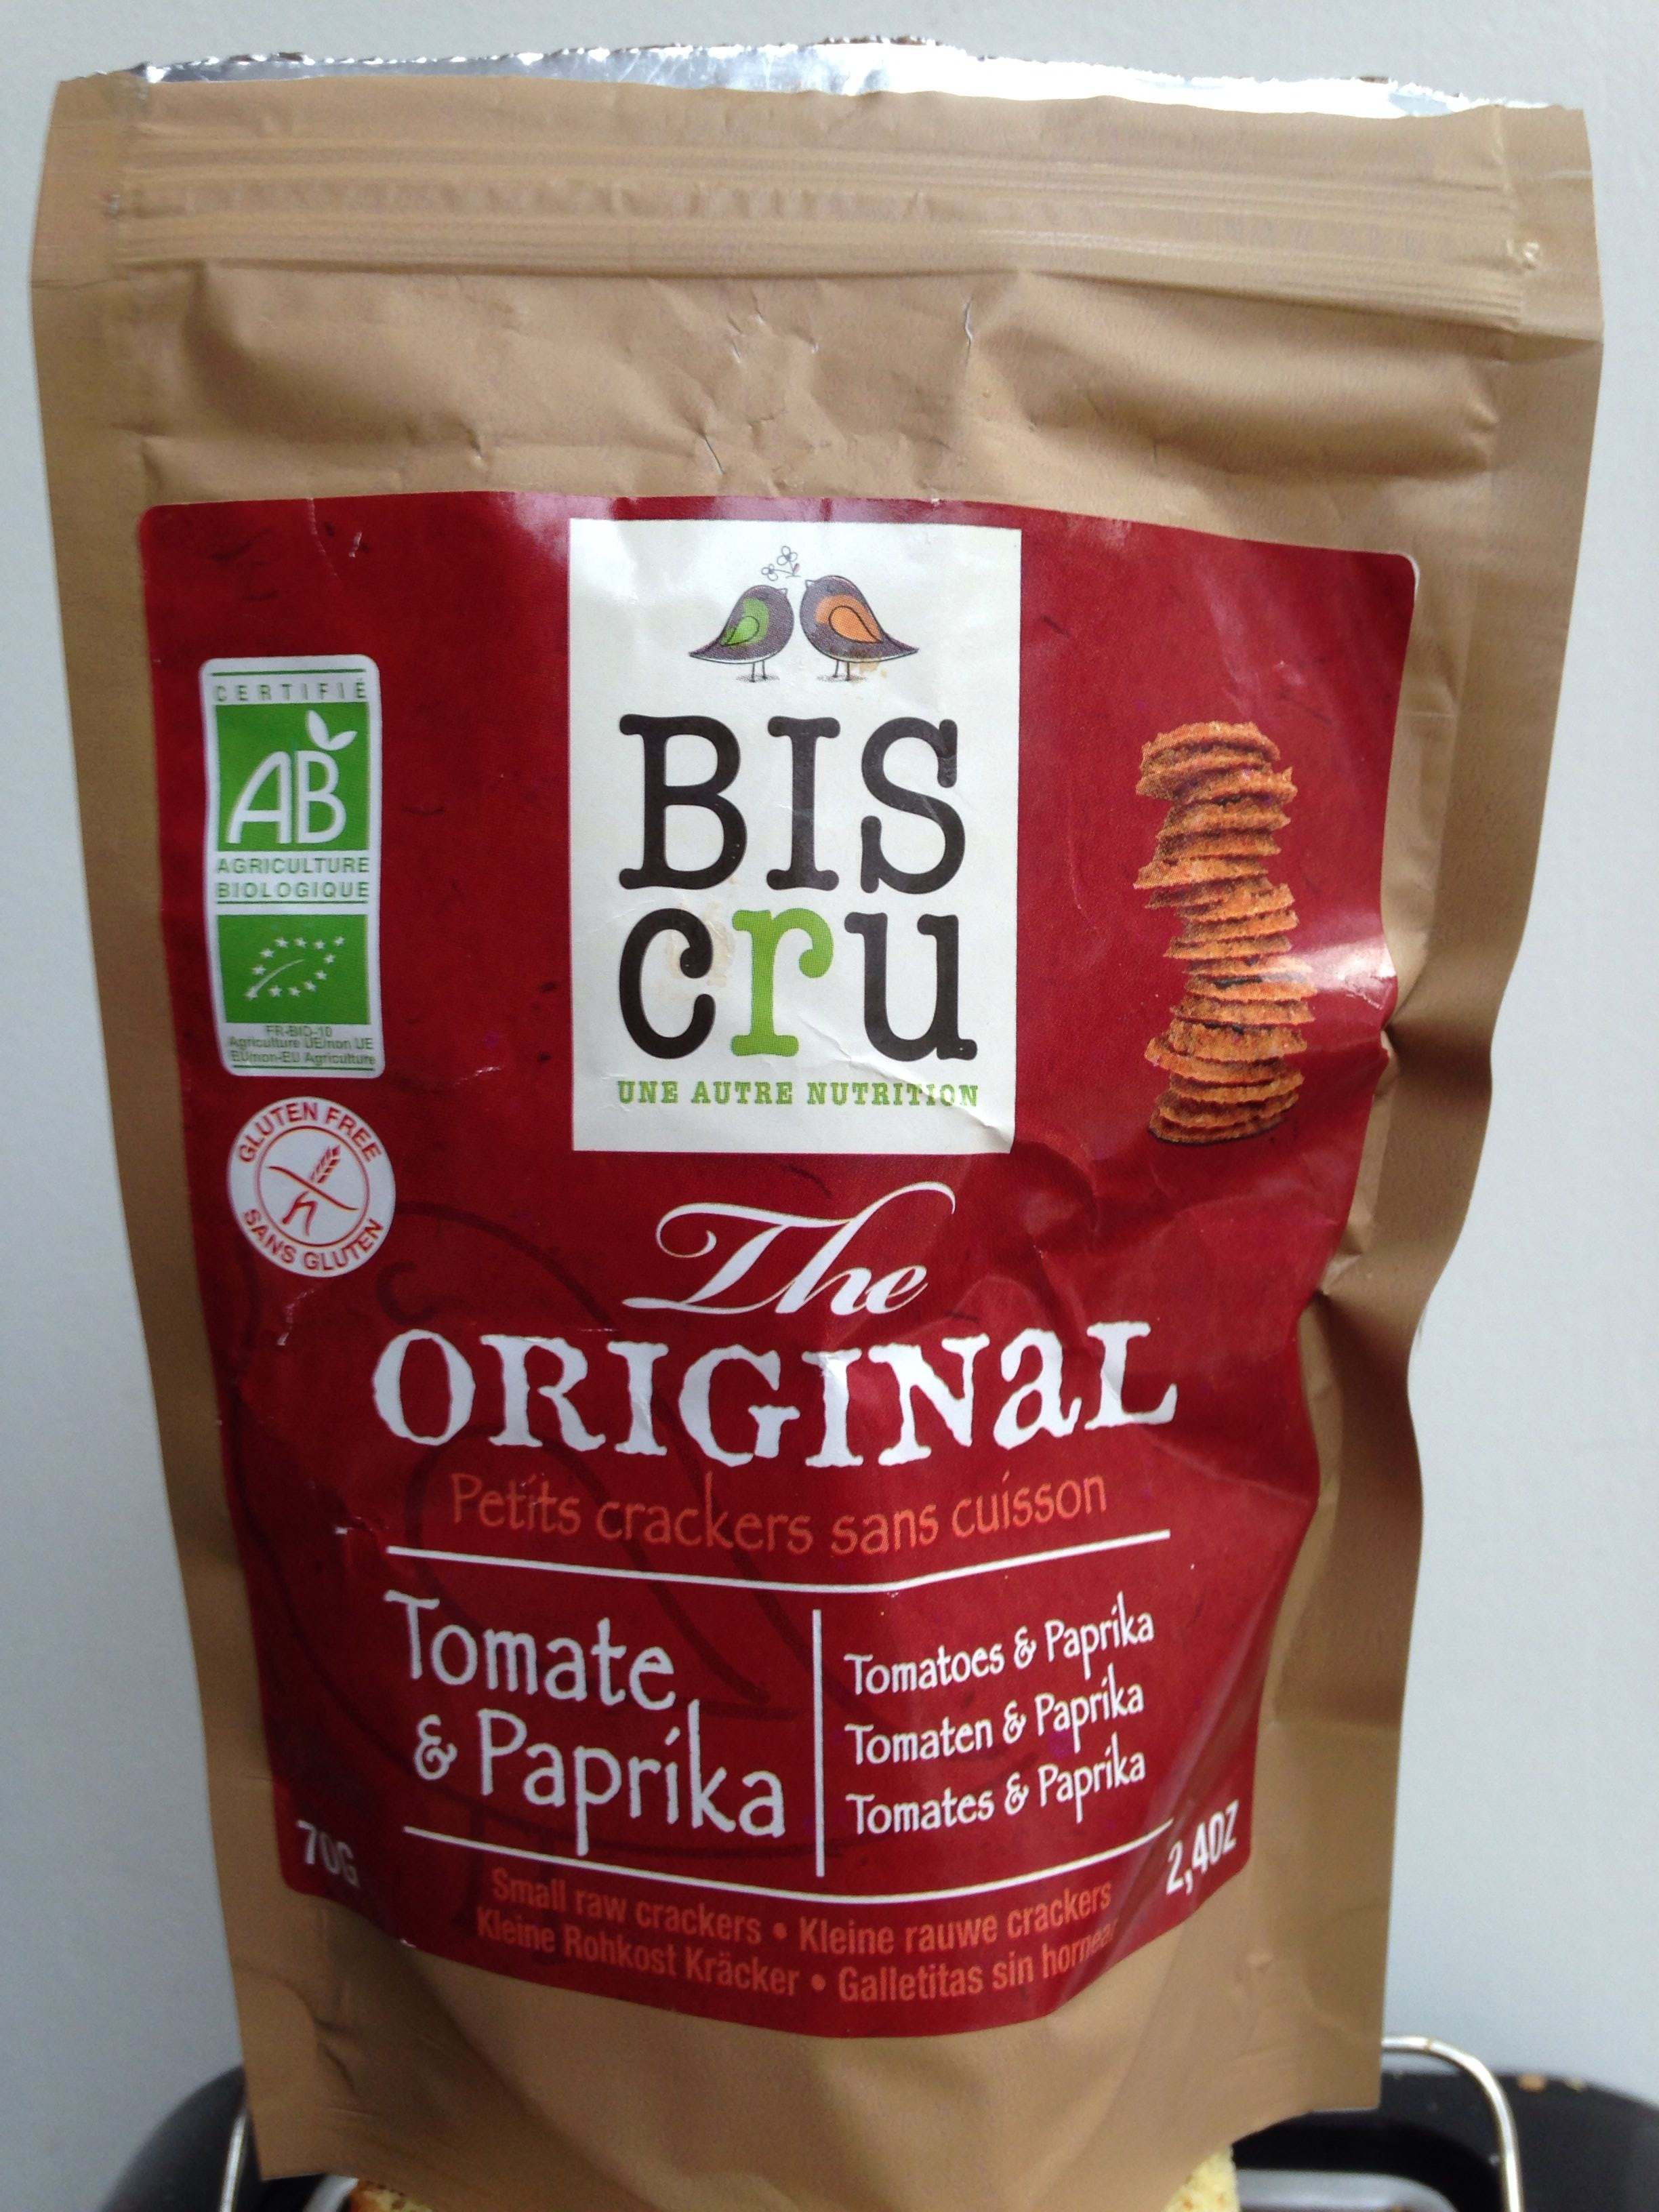 The Original petit crackers tomate & paprika - Product